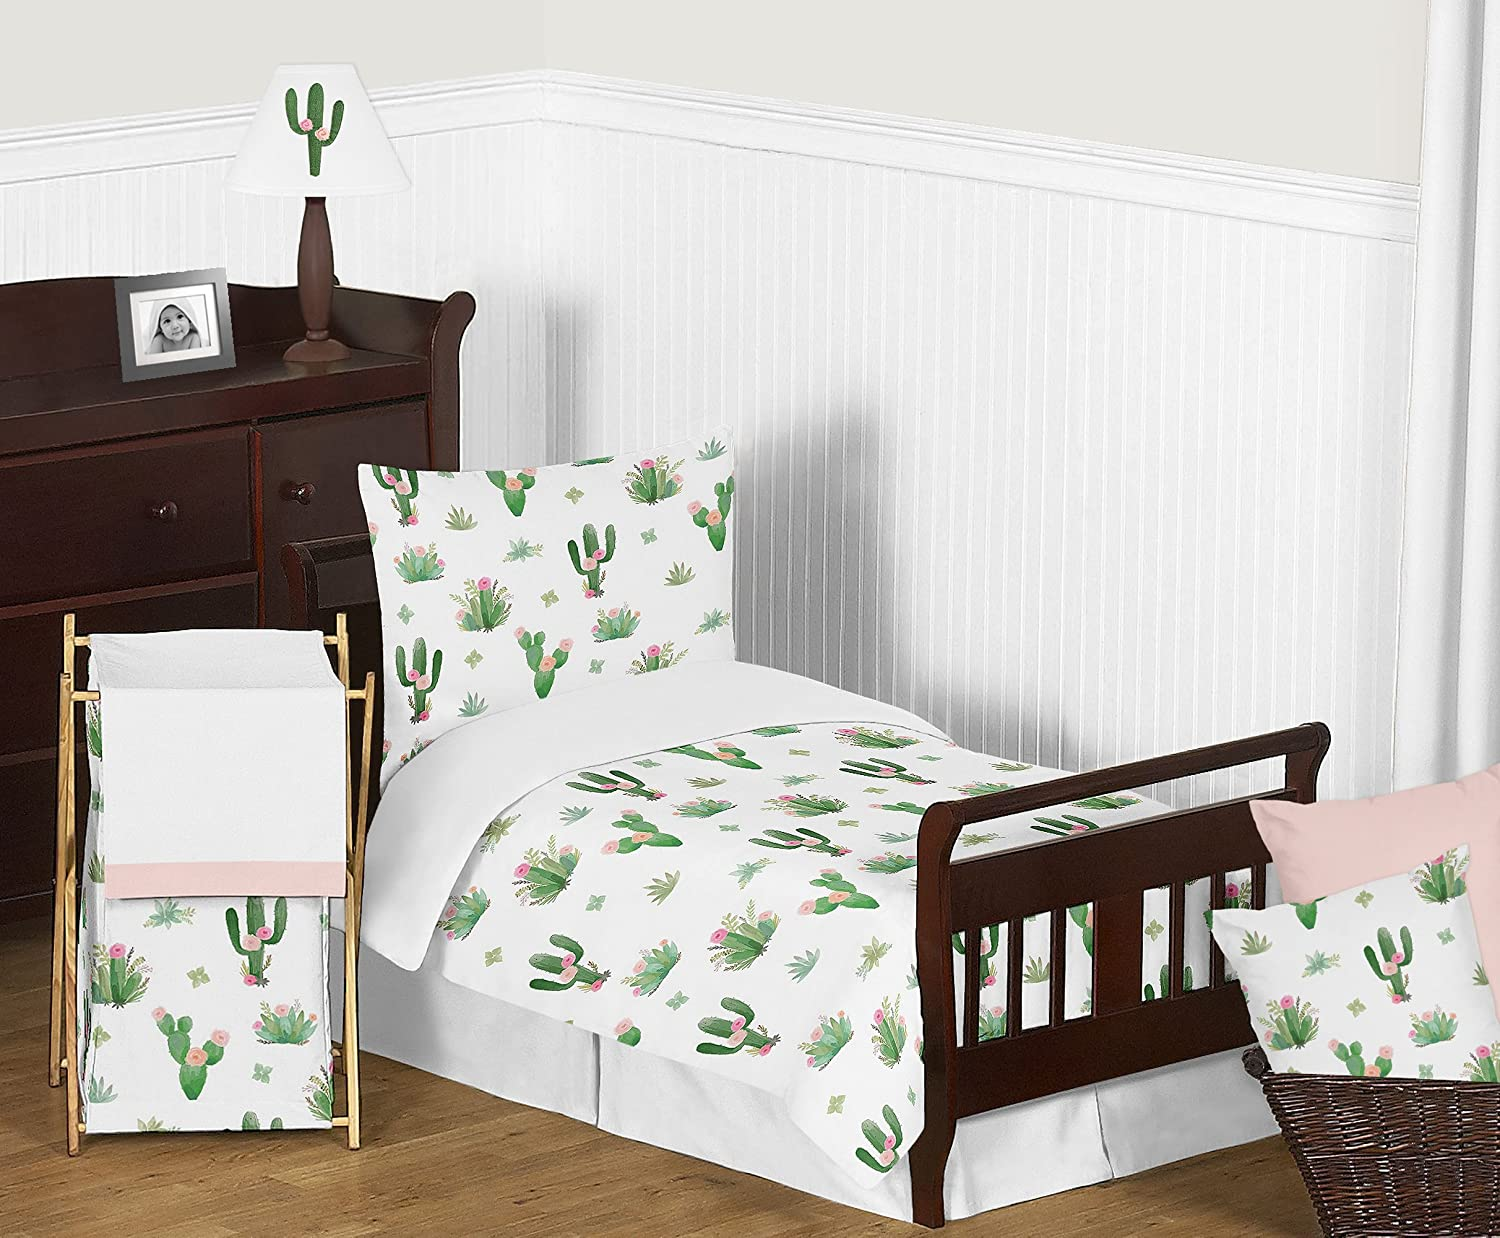 Pink and Green Boho Watercolor Cactus Floral Girl Toddler Kid Childrens Bedding Set by Sweet Jojo Designs 5 pieces Comforter Sham and Sheets